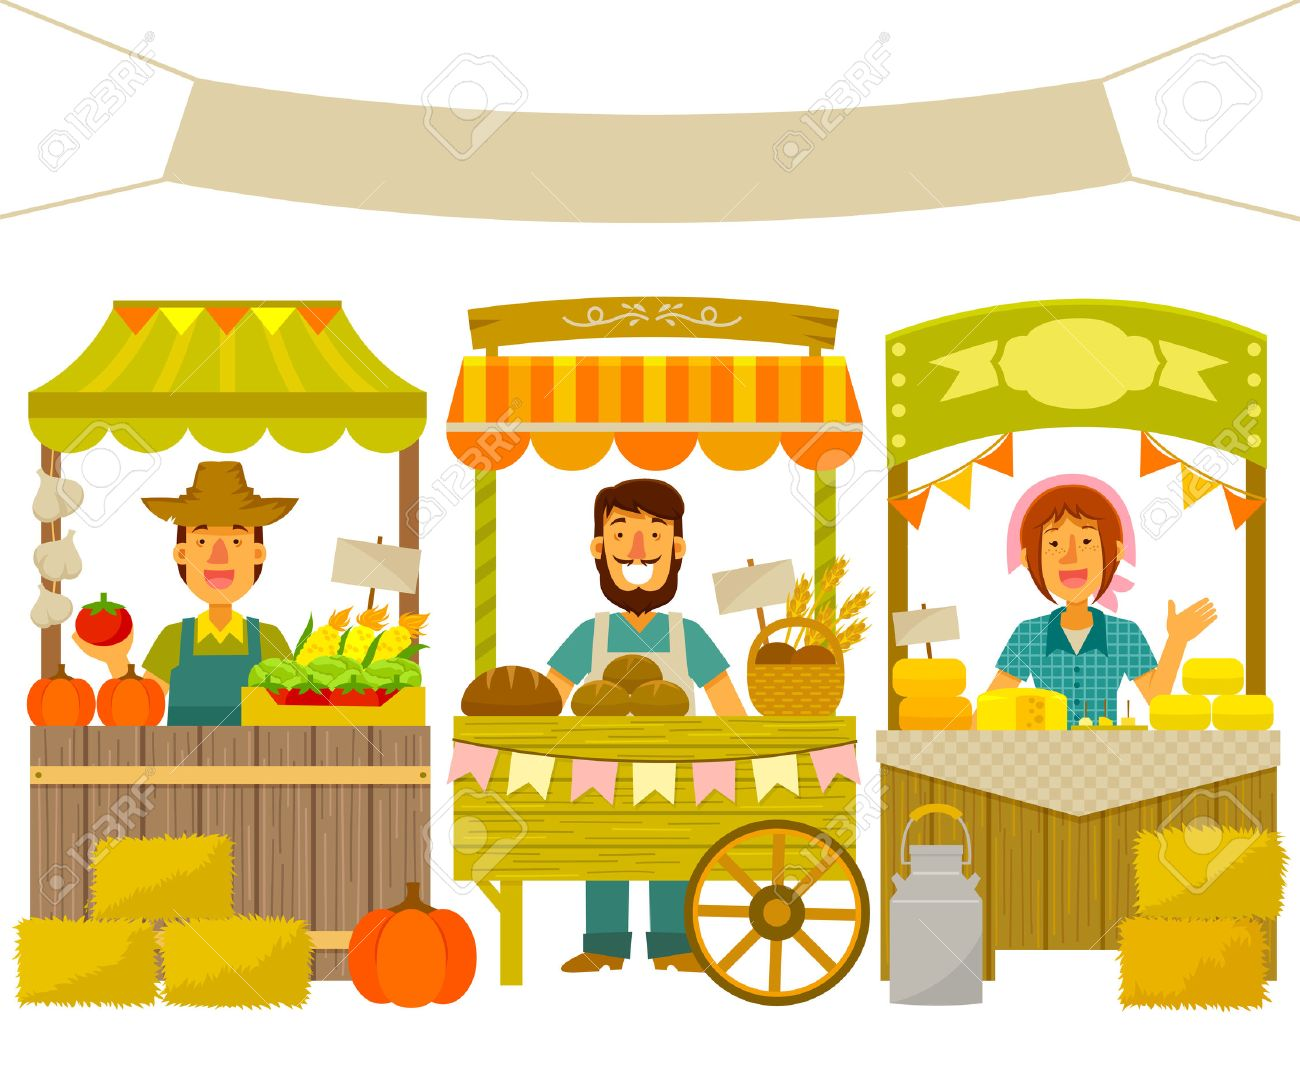 farmers selling their products on wooden stalls - 58027751